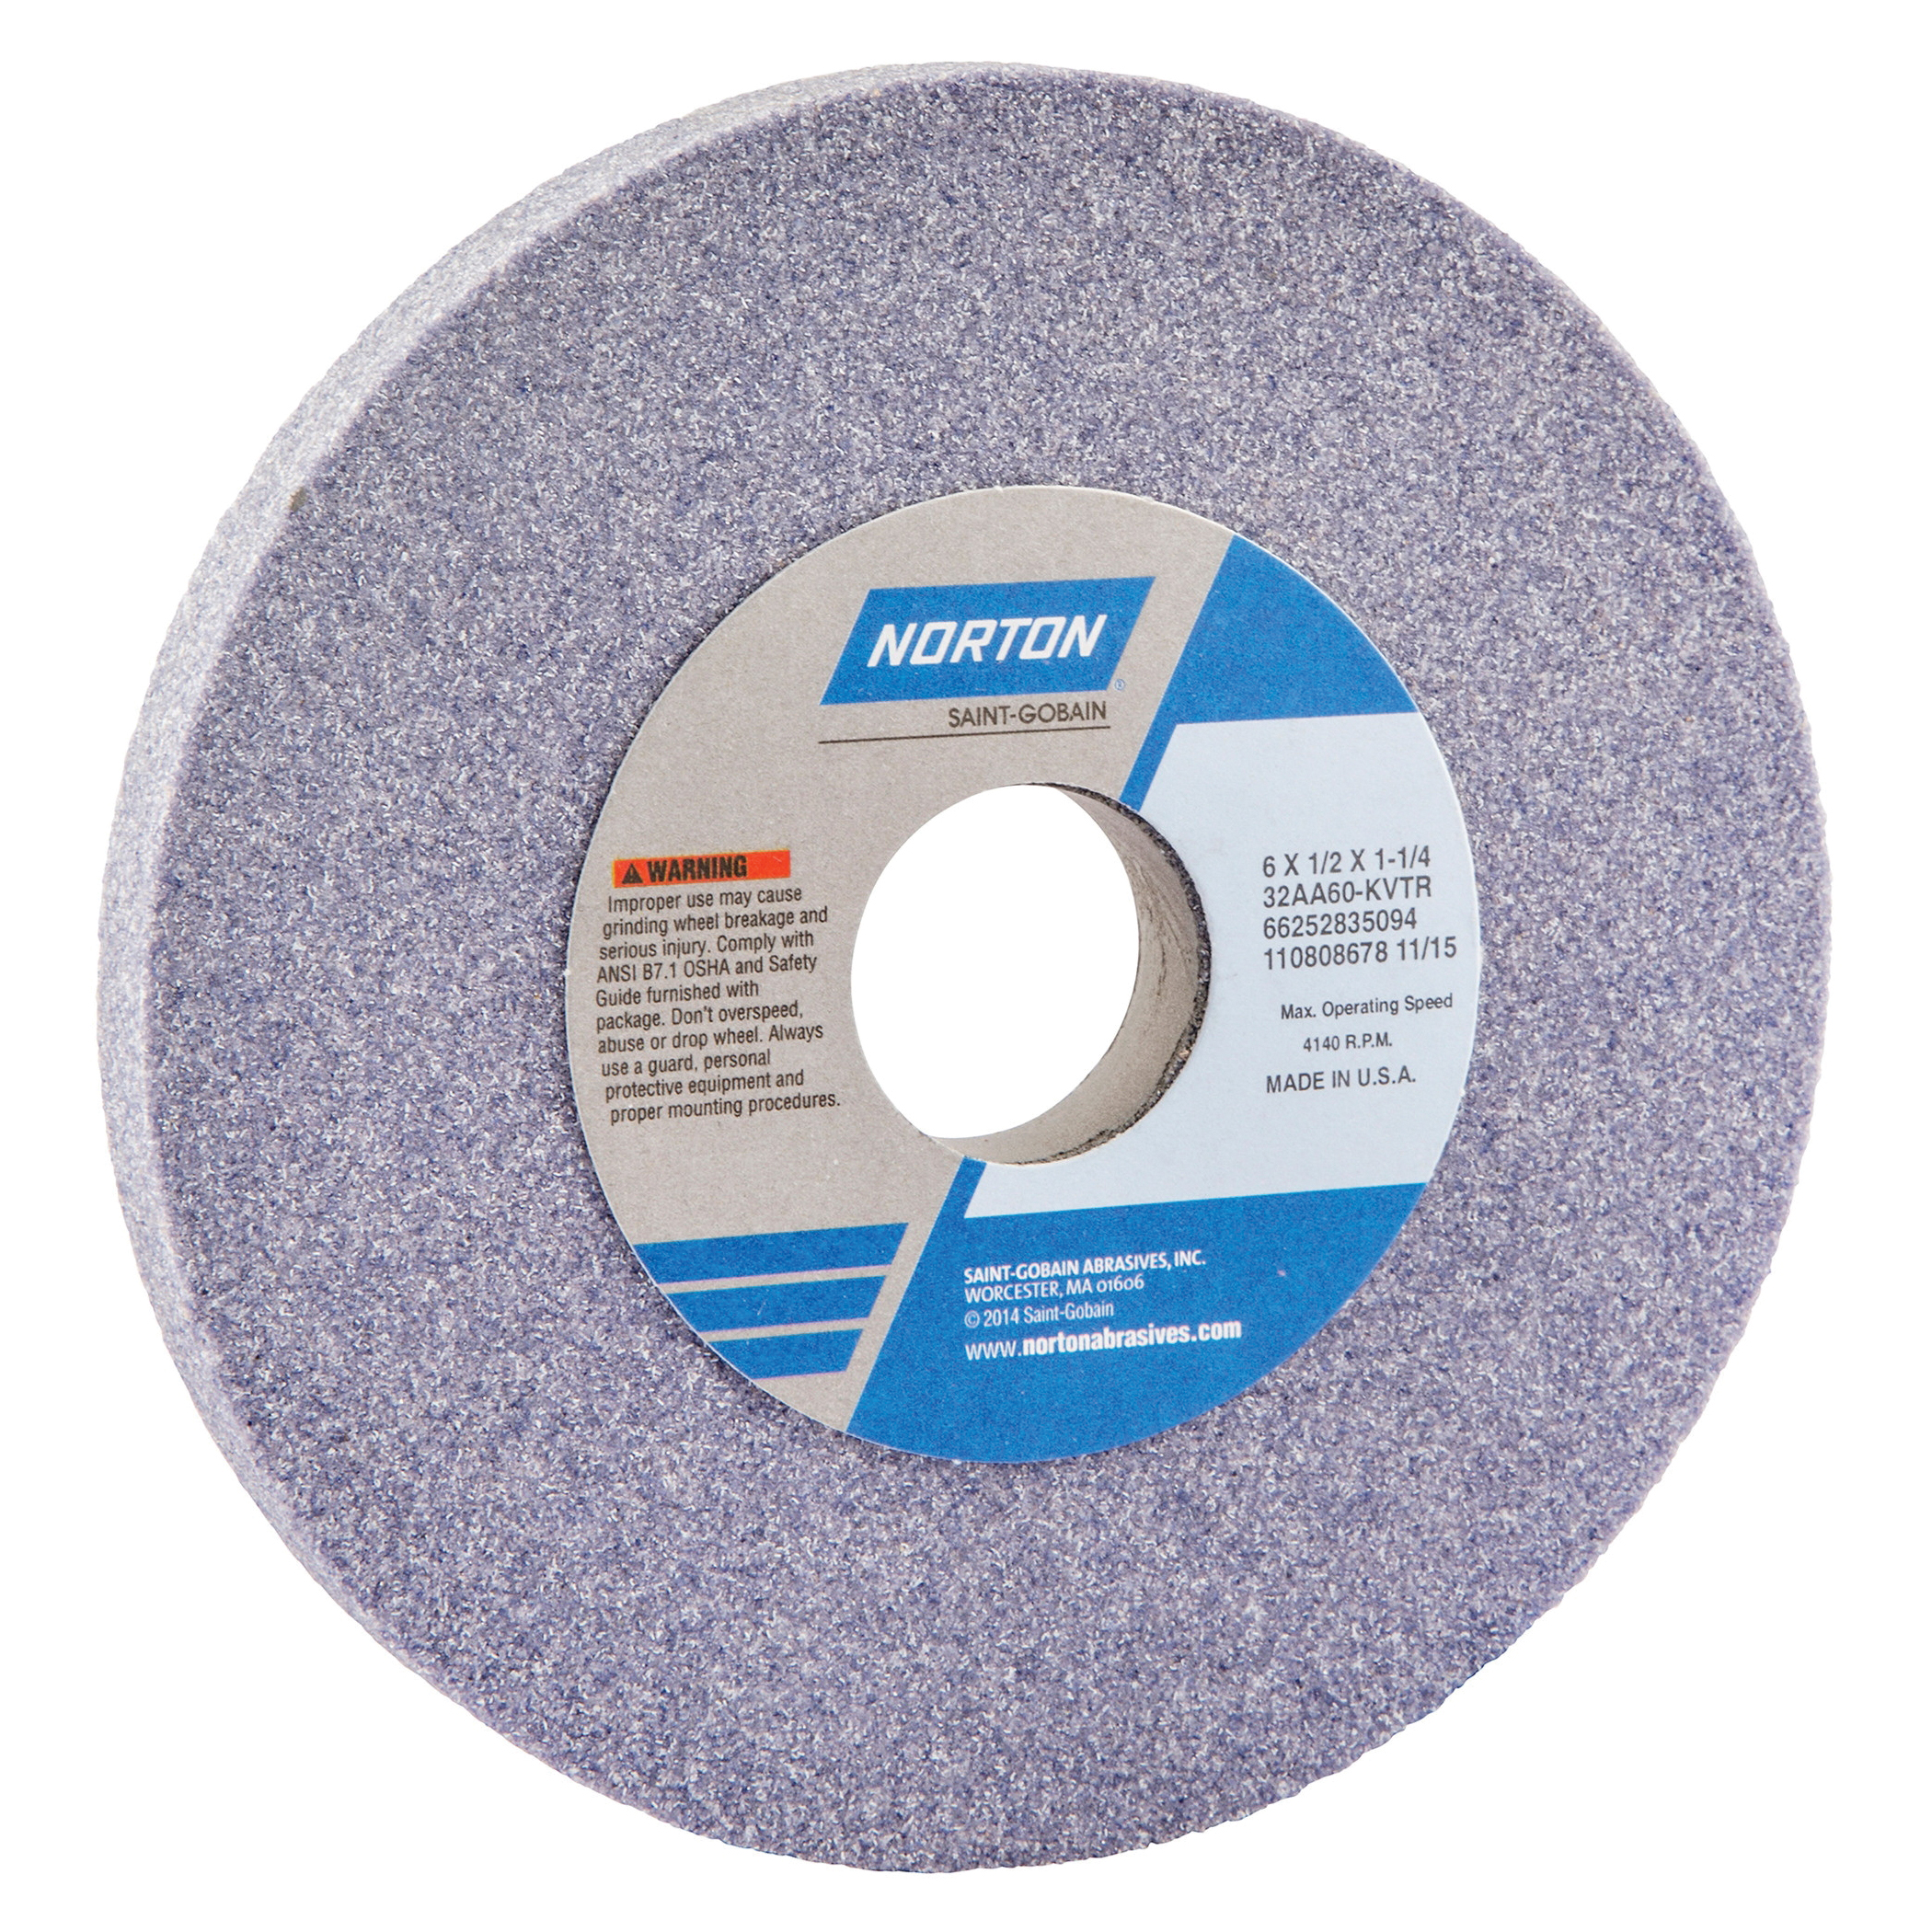 Norton® 66252835094 32AA Straight Toolroom Wheel, 6 in Dia x 1/2 in THK, 1-1/4 in Center Hole, 60 Grit, Aluminum Oxide Abrasive